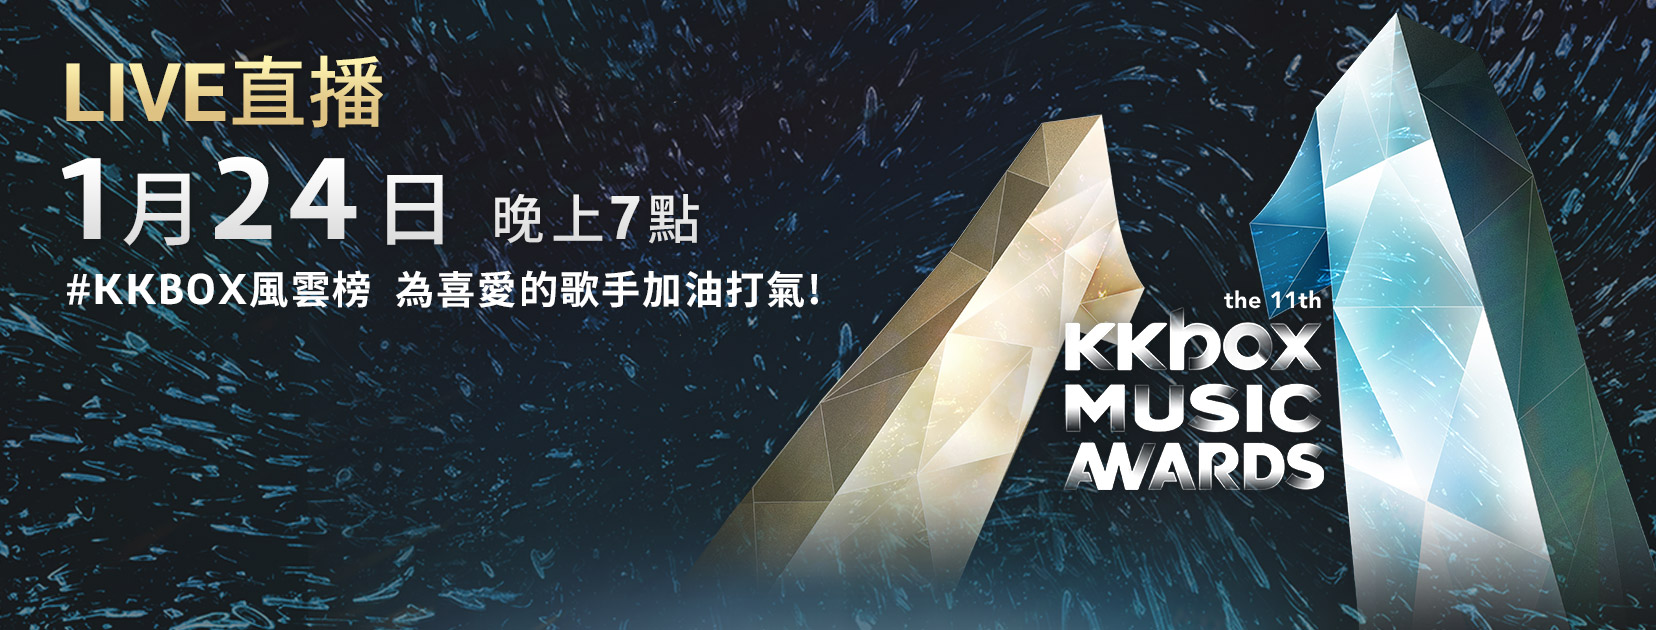 11th KKBOX Awards to be live streamed tonight on YouTube for international audience